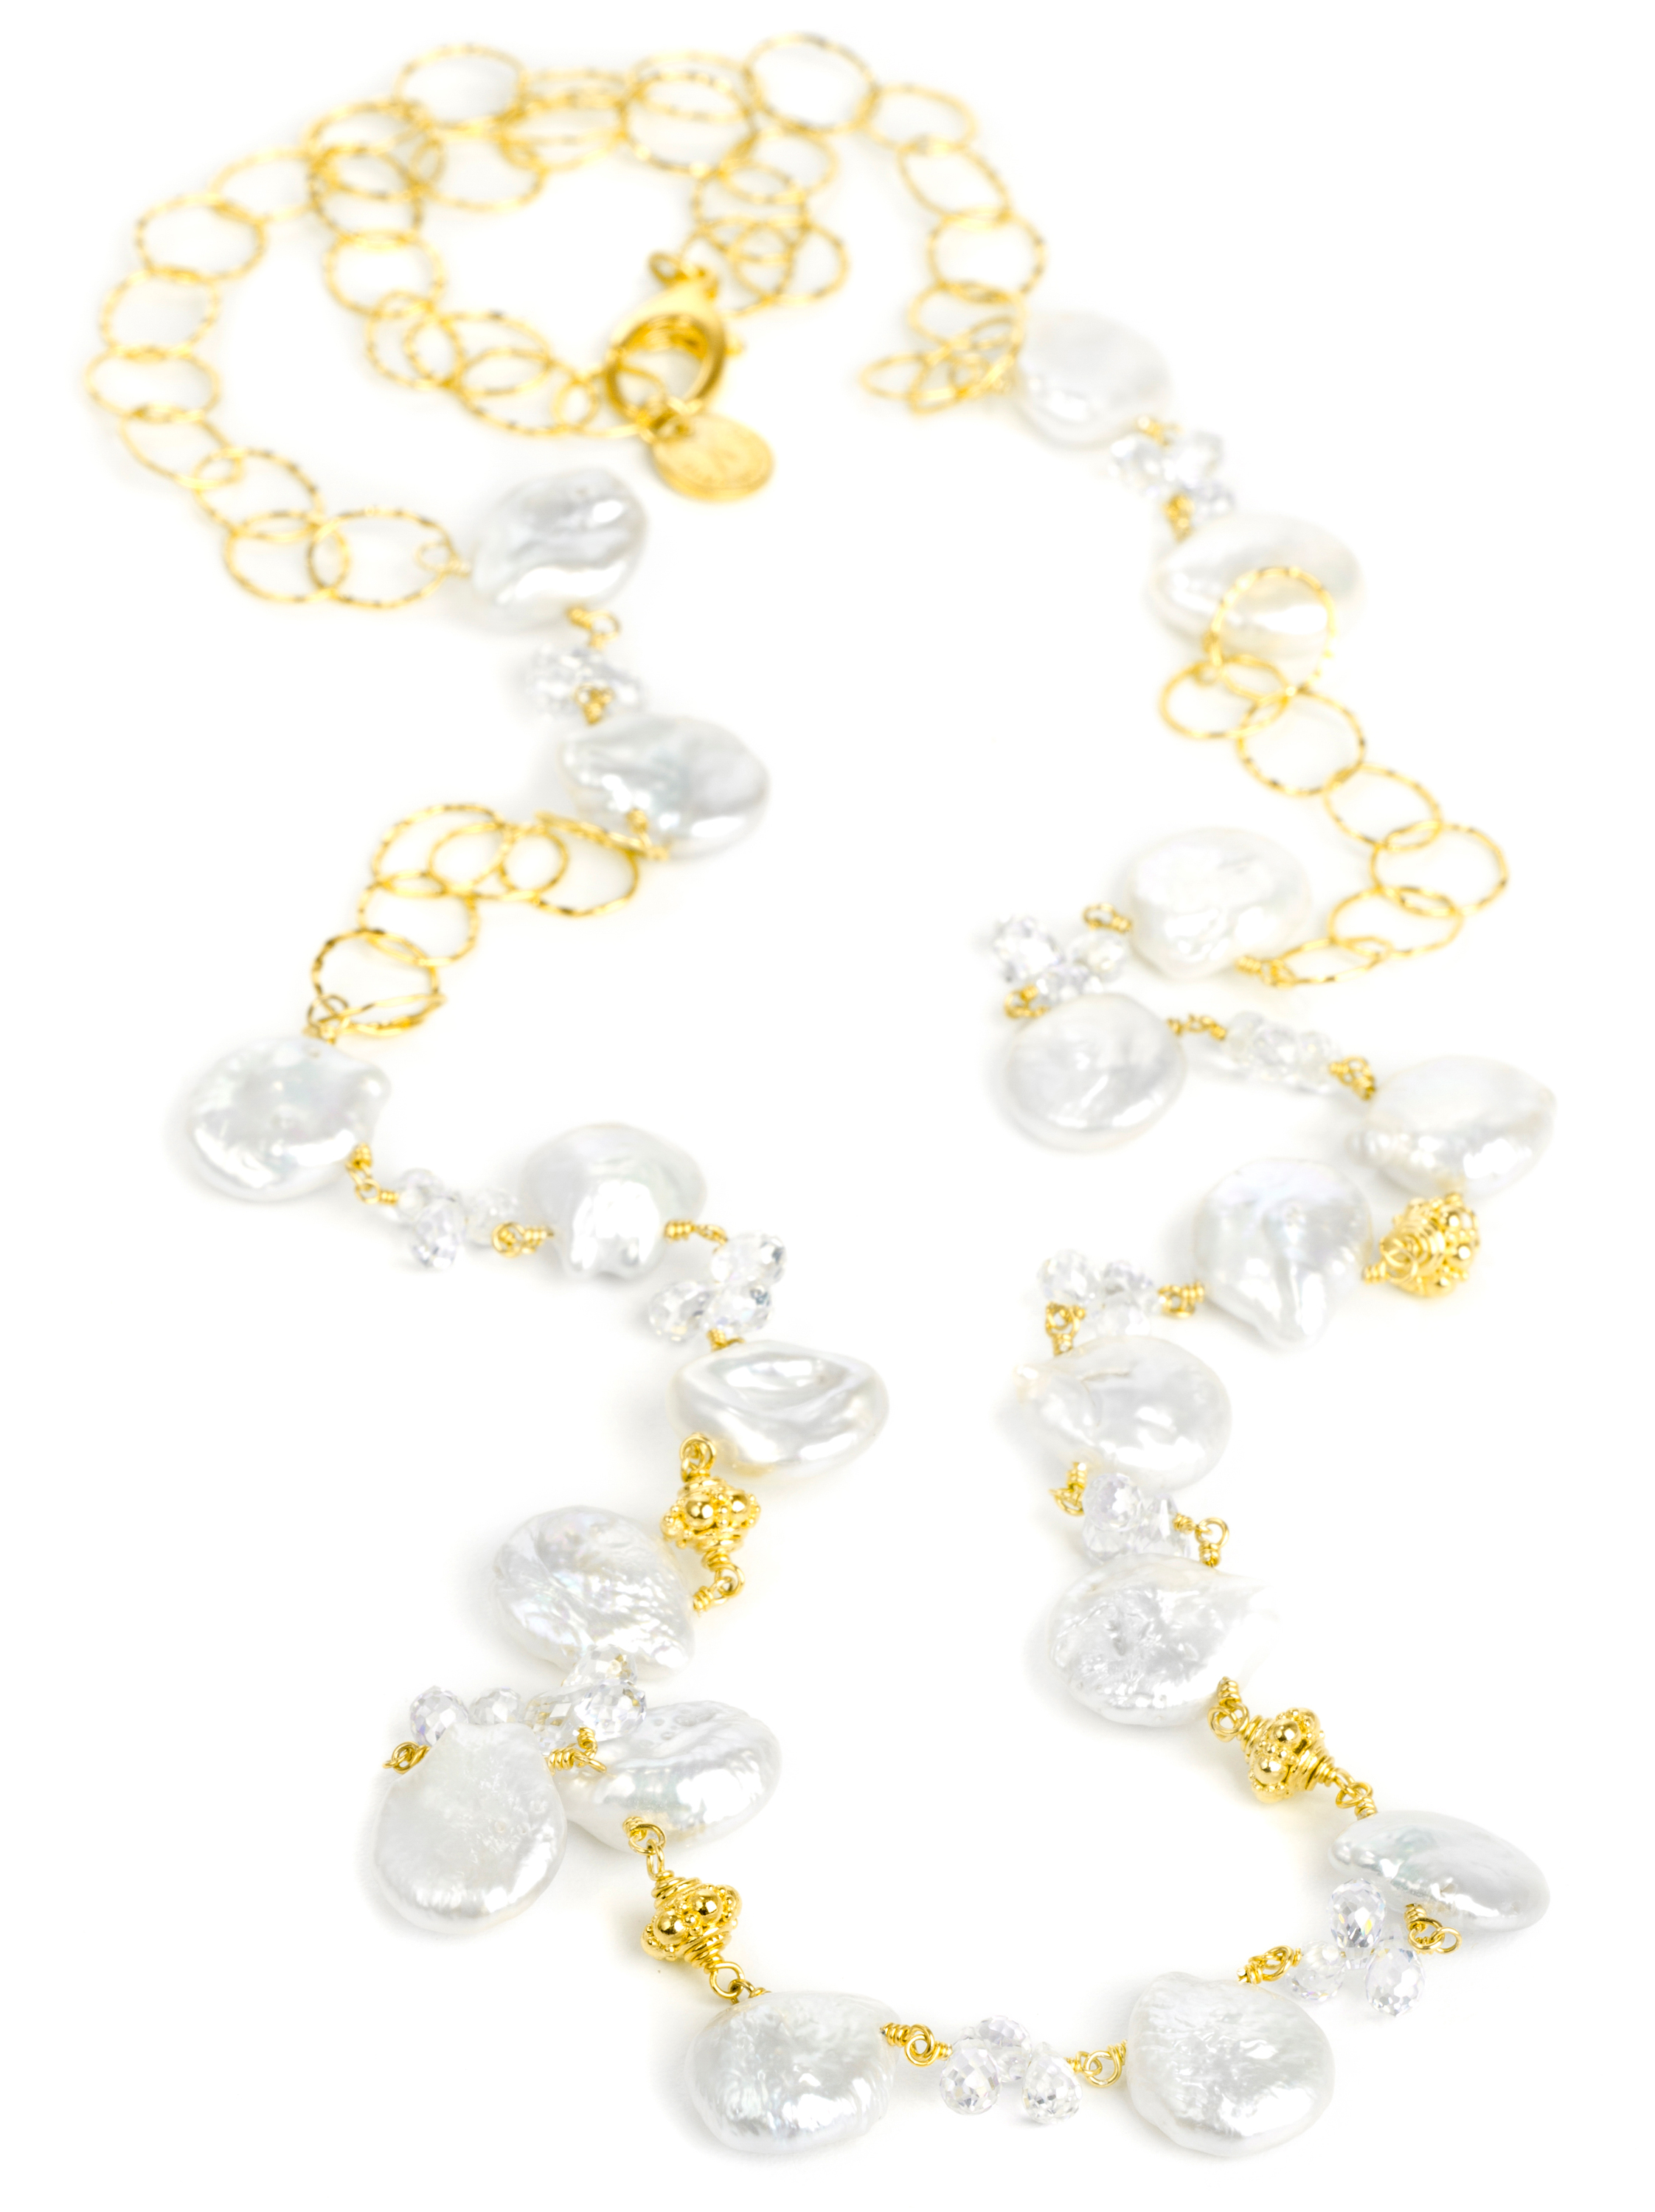 Nina Nguyen Melody pearl necklace | JCK On Your Market